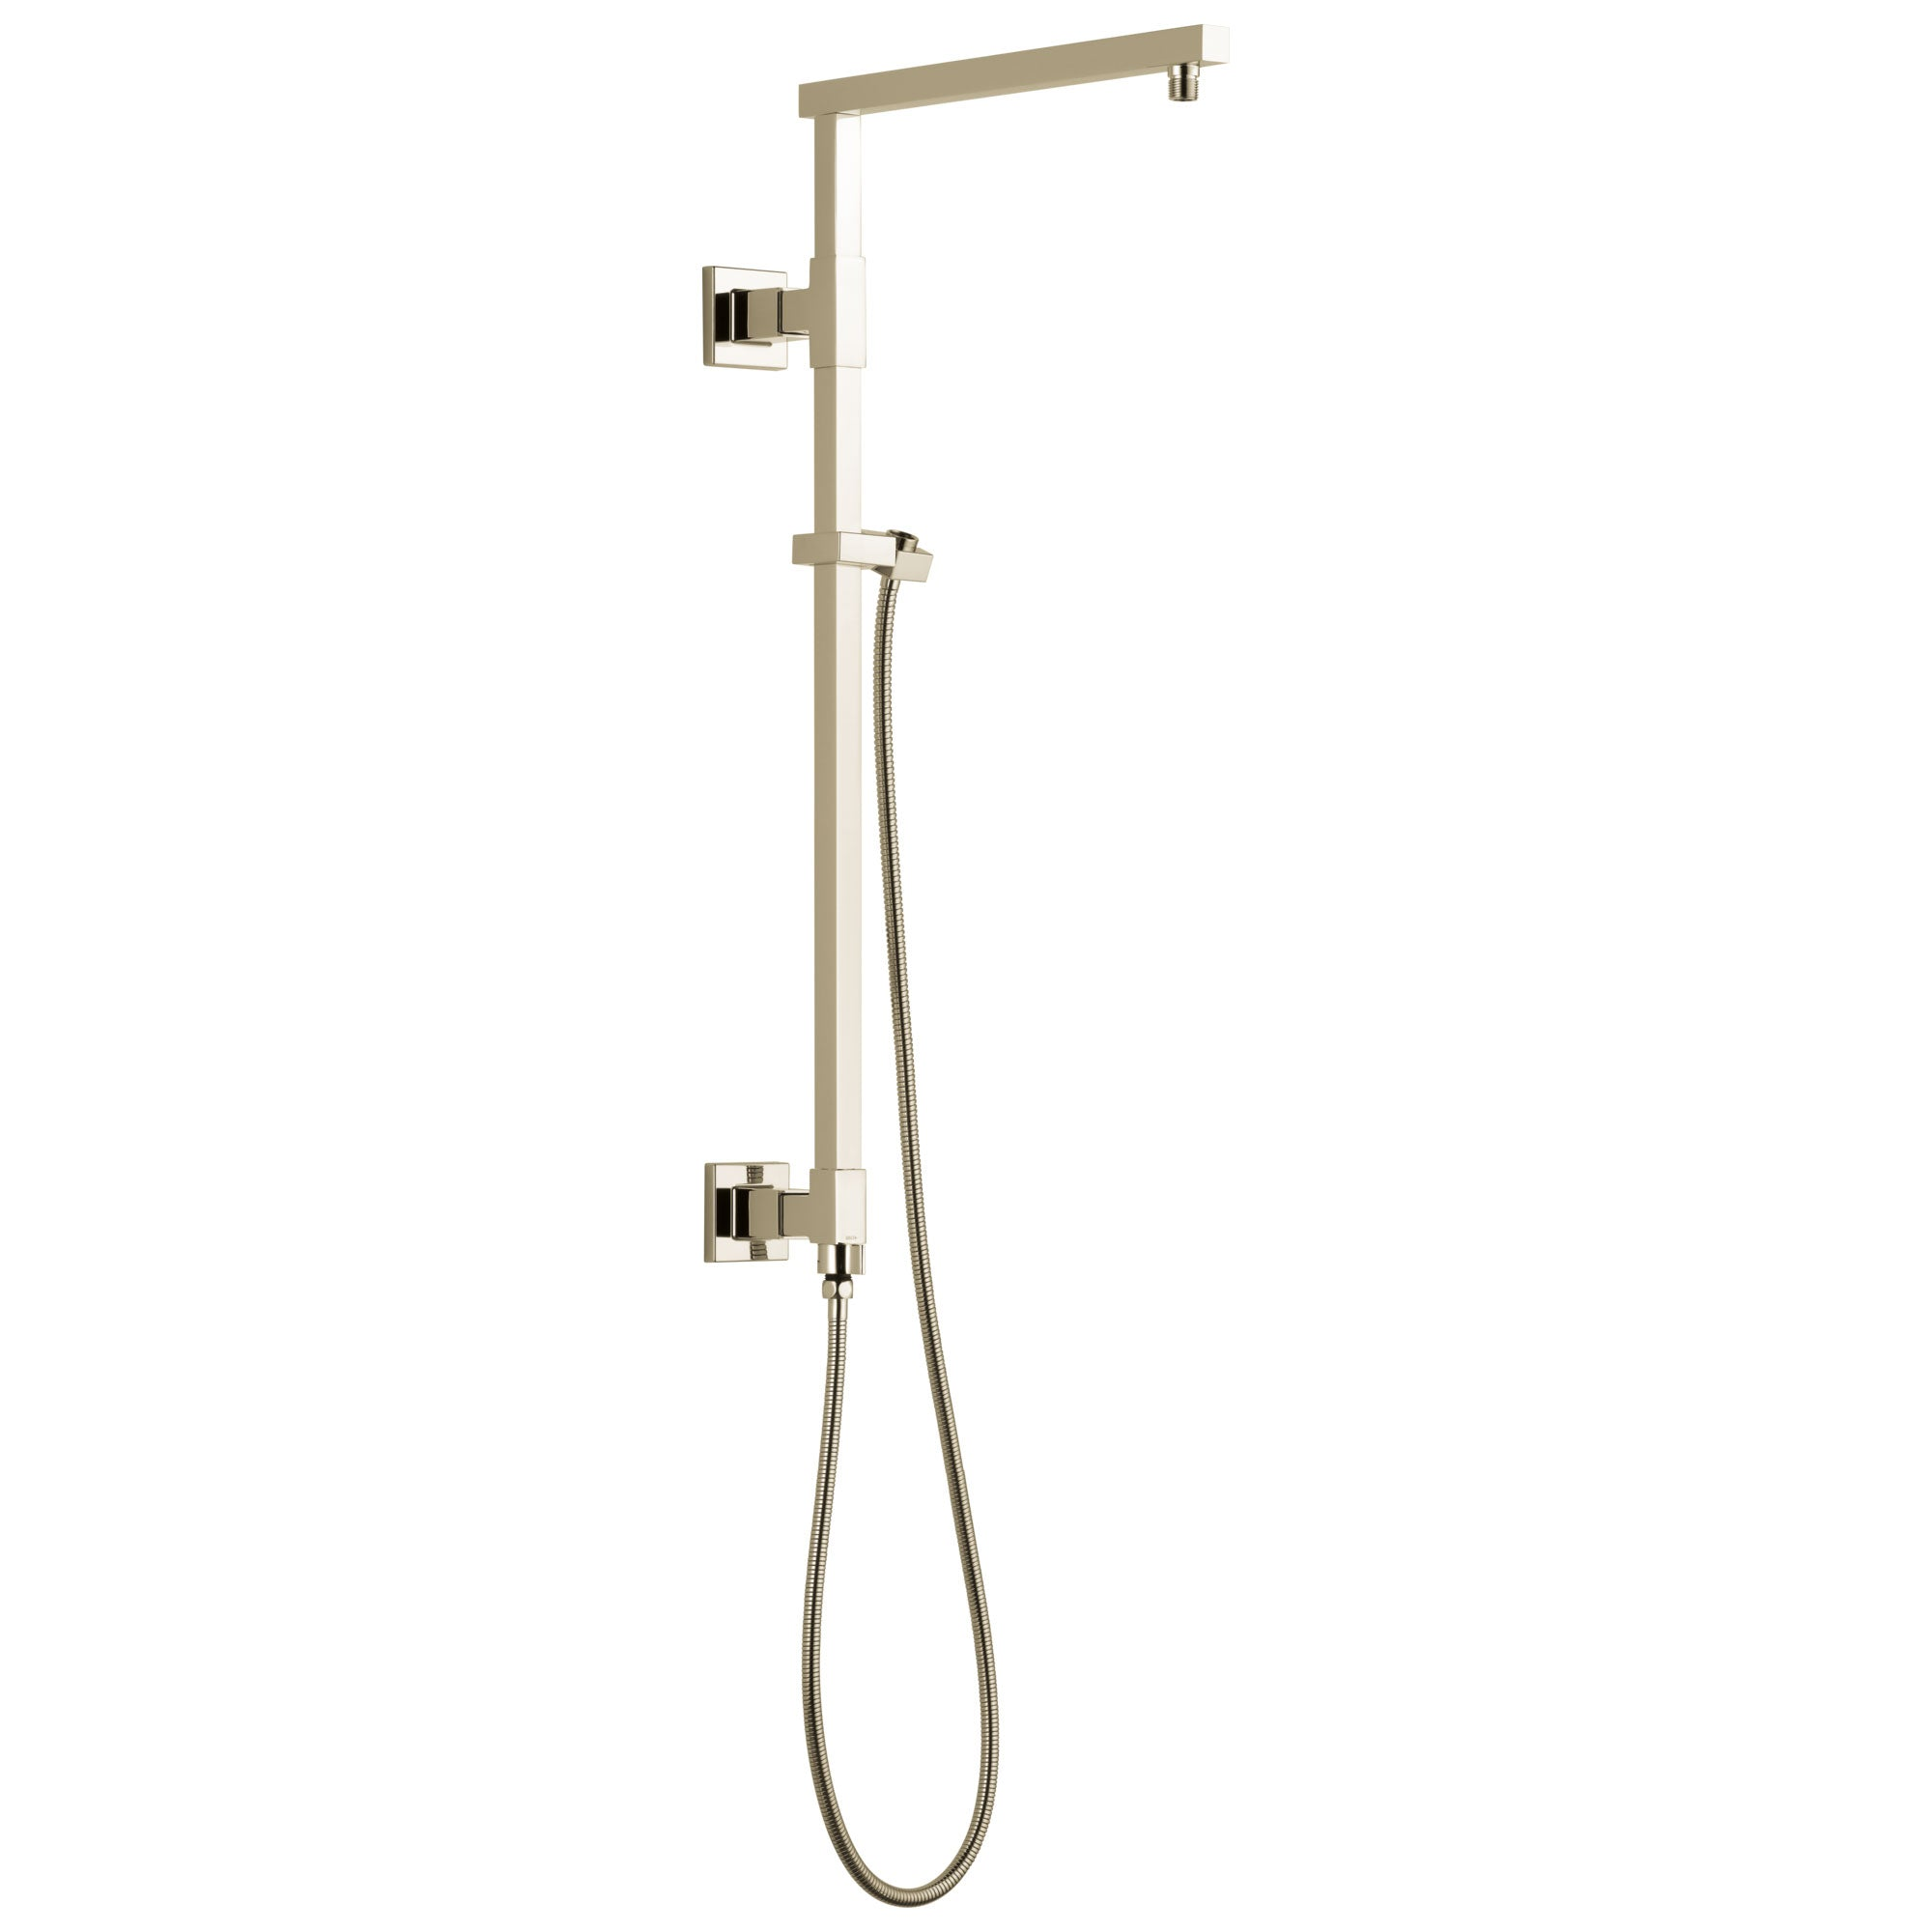 "Delta Polished Nickel Finish Emerge Modern Angular Square Shower Column 26"" (Requires Showerhead, Hand Spray, and Control) D58420PN"